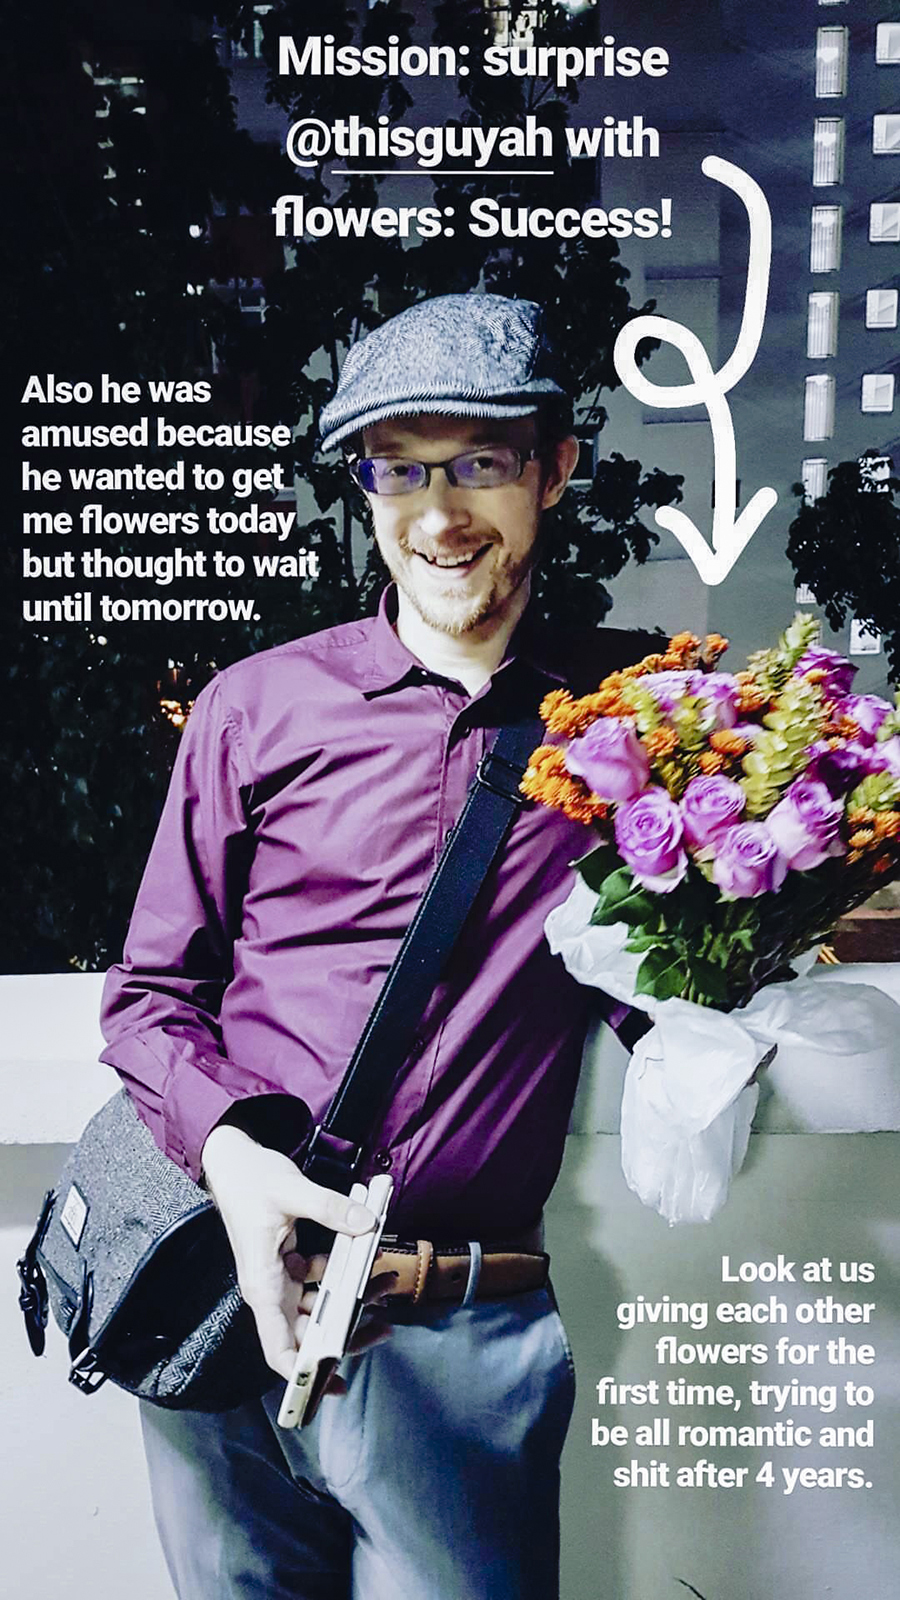 Instagram Story Pupuren of @thisguyah being surprised with a bouquet of colourful flowers.